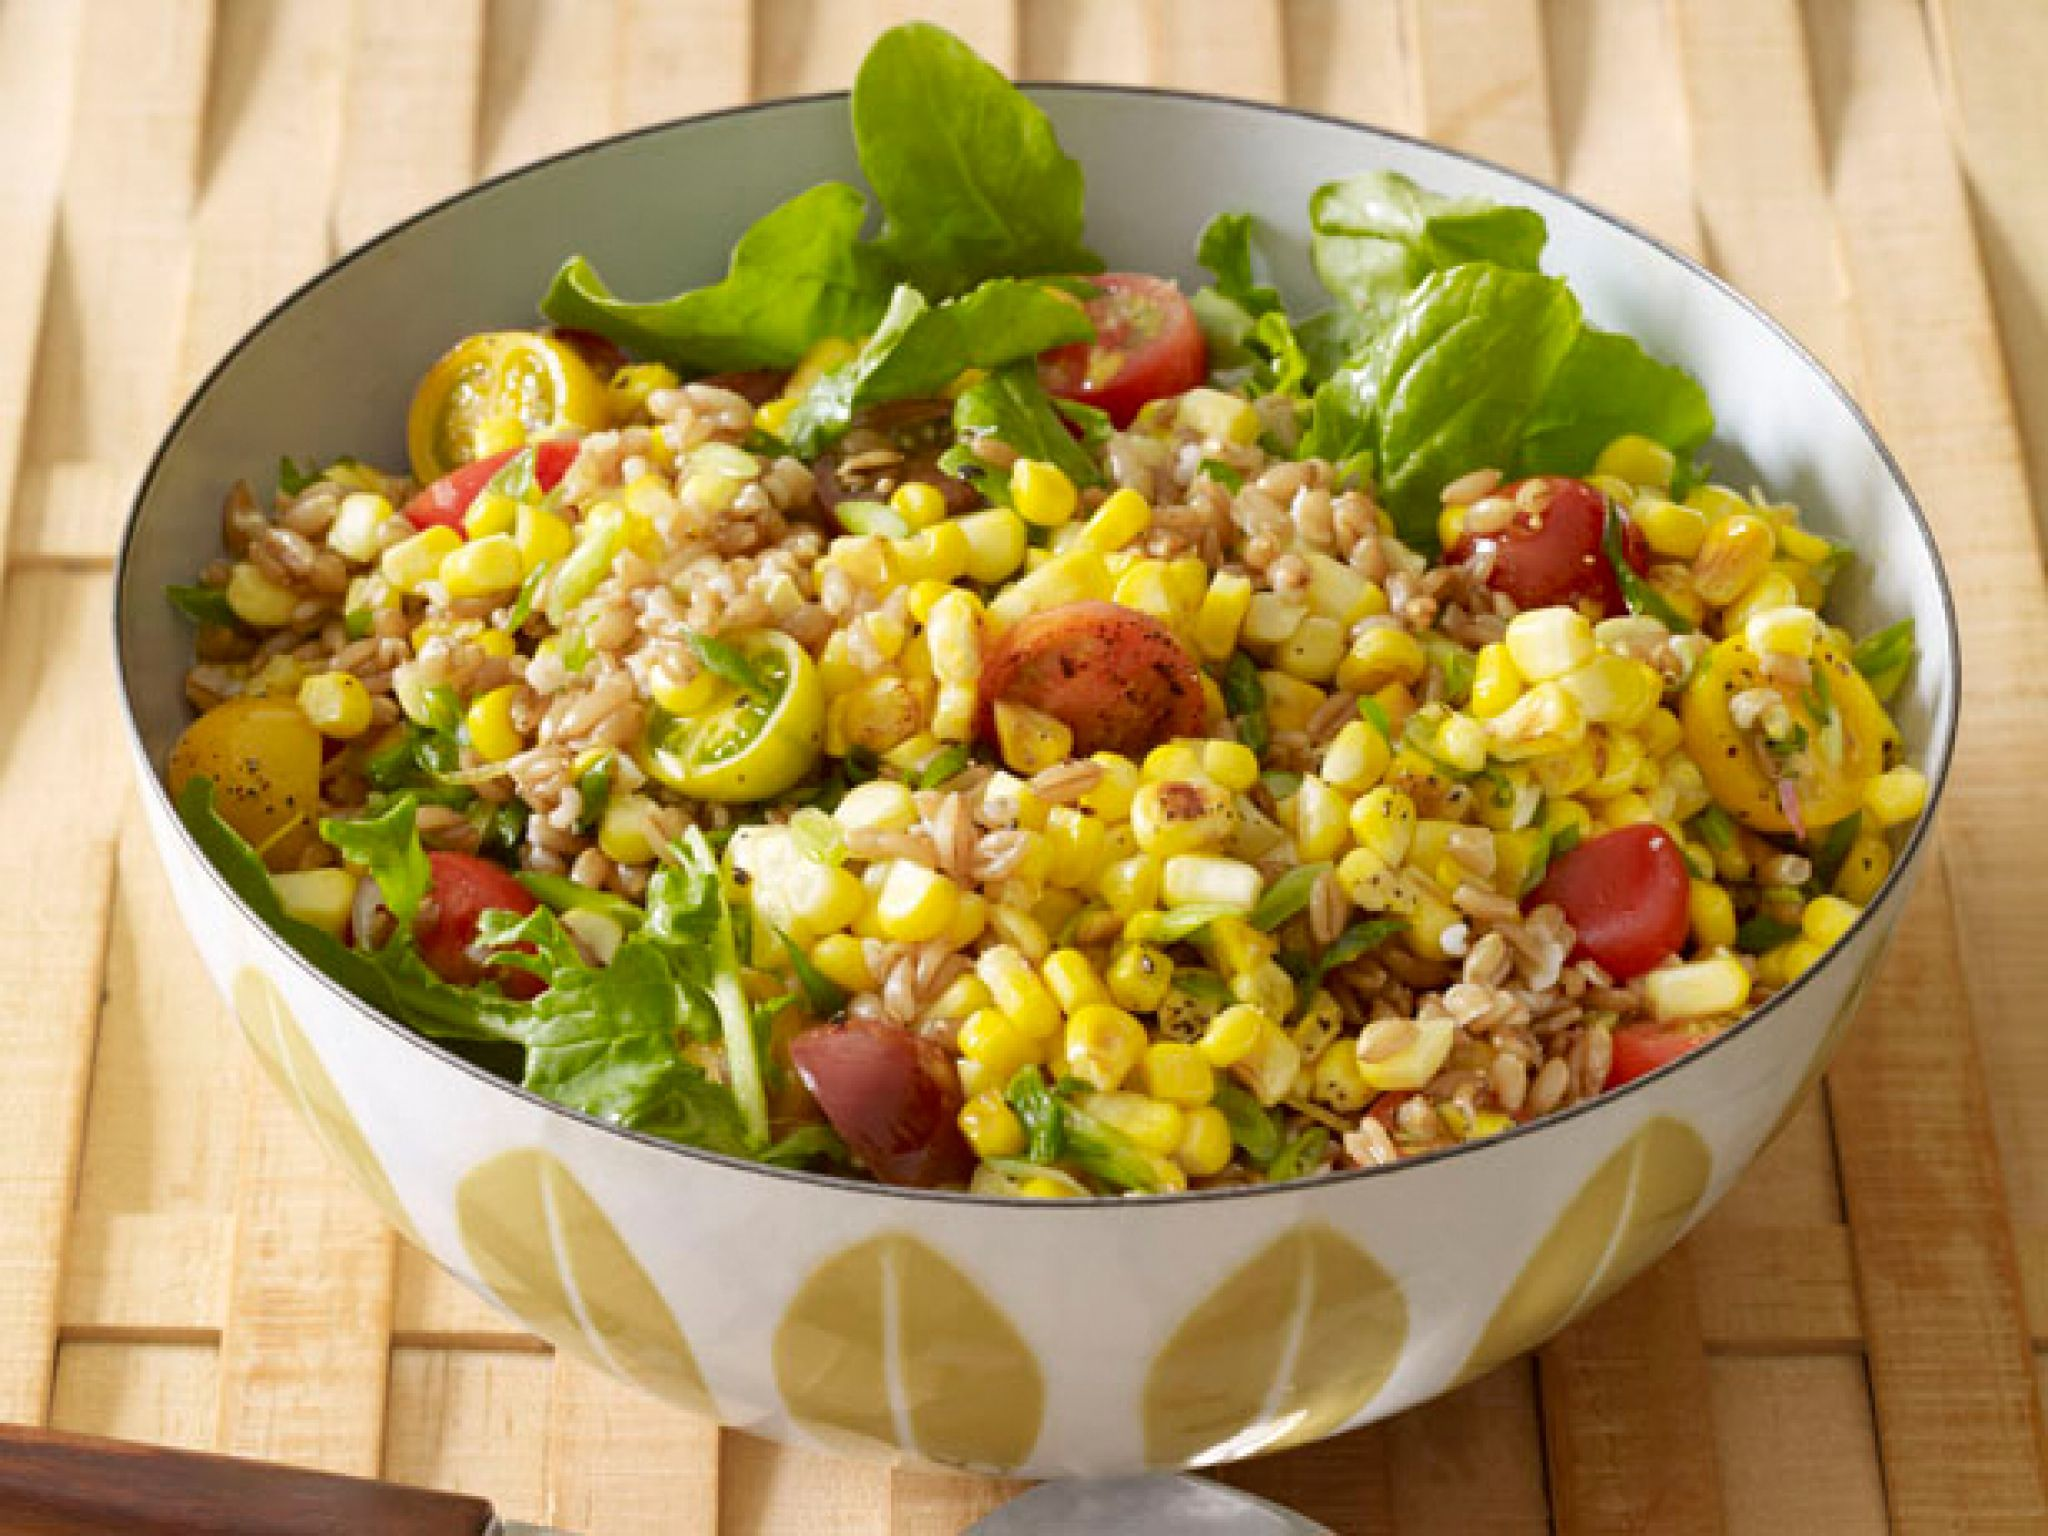 Food network healthy recipes - Healthy Summer Side Dishes Food Network